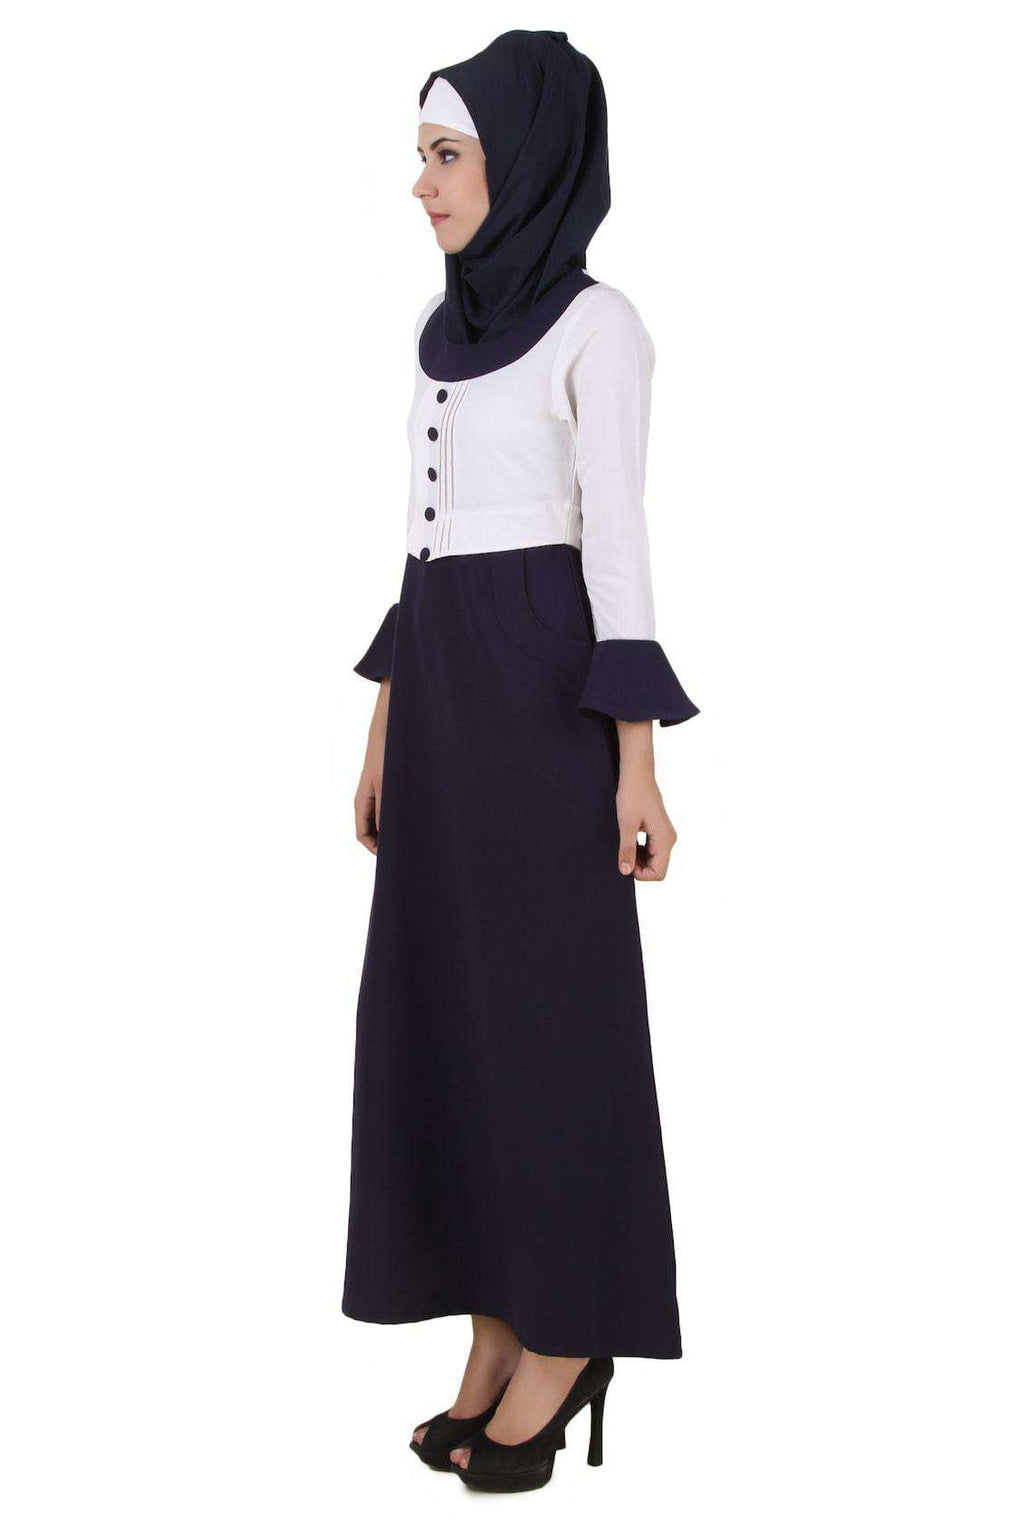 Eiman White & Navy Blue Kashibo Abaya Side